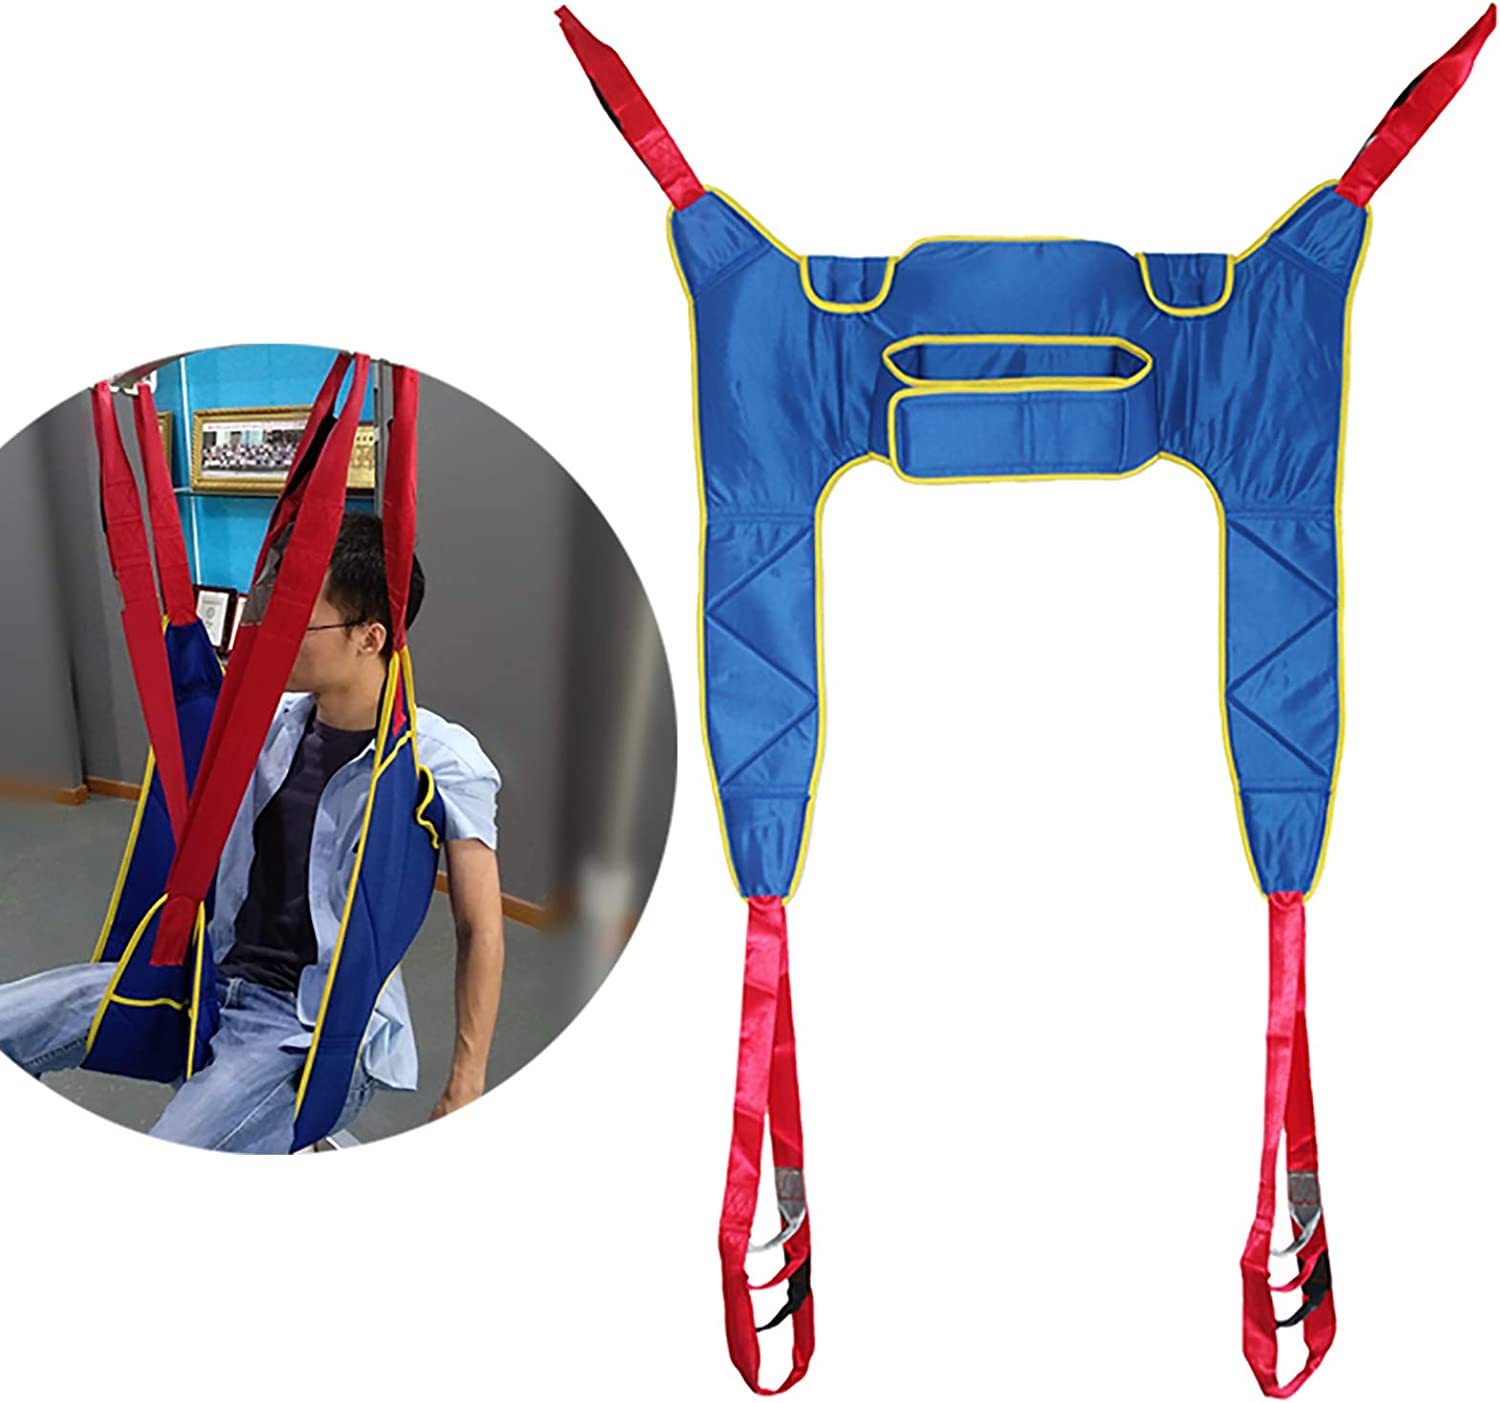 BXUFEI All stores are sold Patient Large special price !! Aid Transport Lift Assist Tr Stand Up Sling